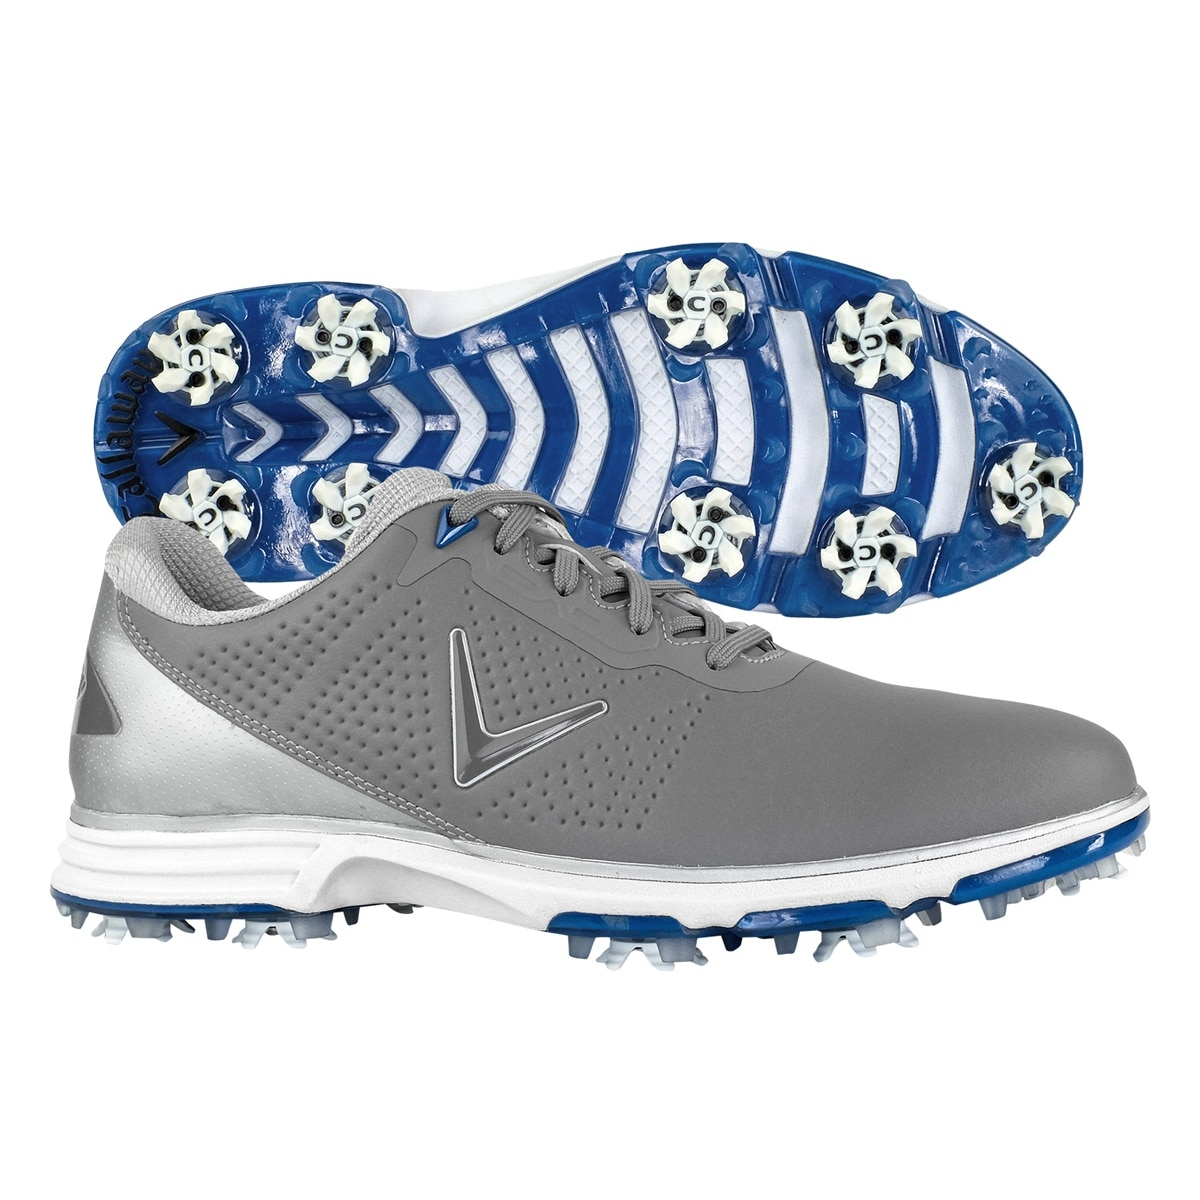 5bfe817800ee3 Shop Callaway Men s Coronado Golf Shoes - Grey Blue - On Sale - Free  Shipping Today - Overstock - 25583551